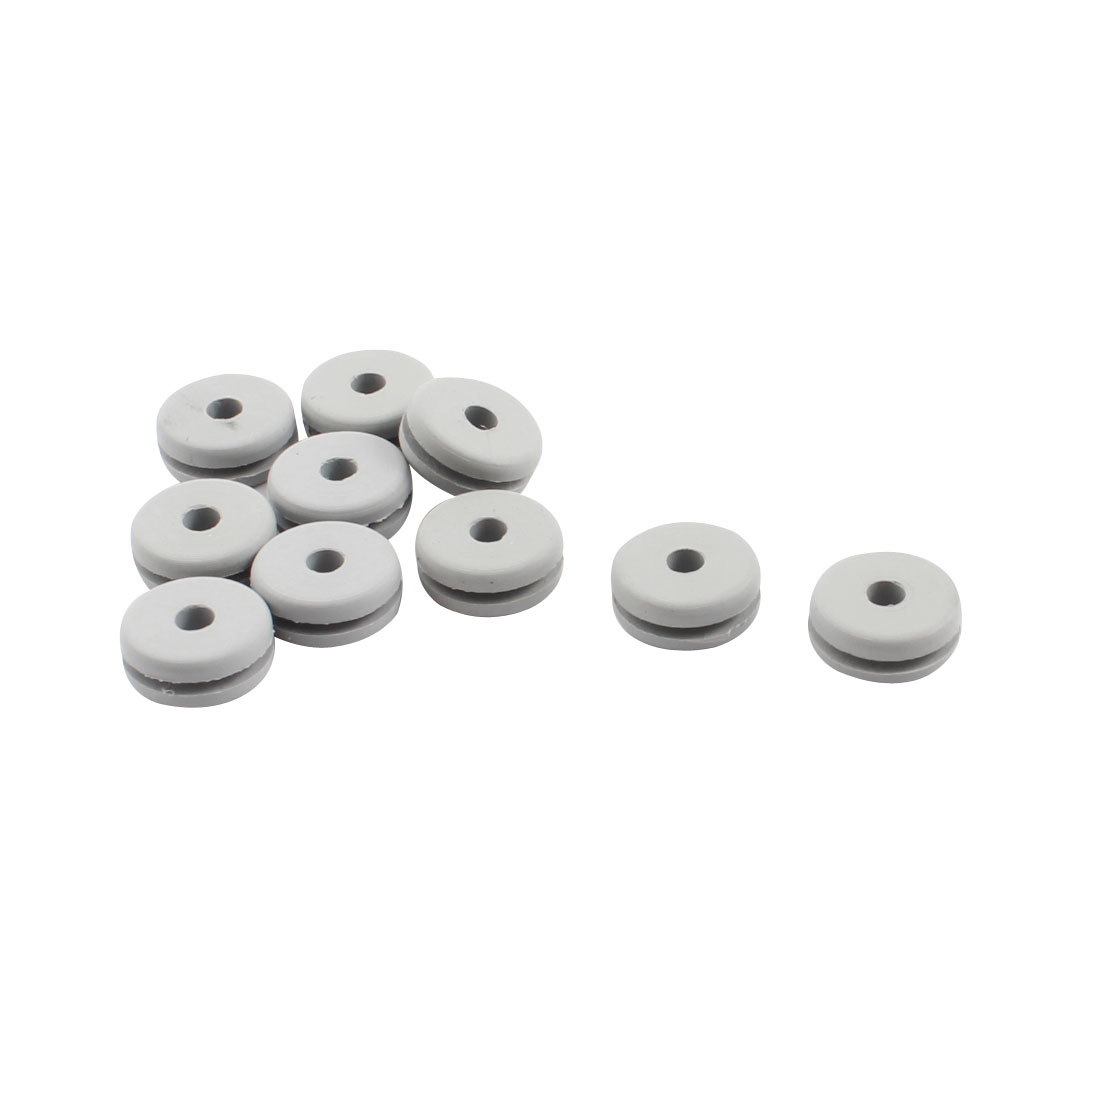 10Pcs RC Spare Parts Canopy Rubber Grommet 2.8x5.5x11x4.5mm for 600 Size Helicopter